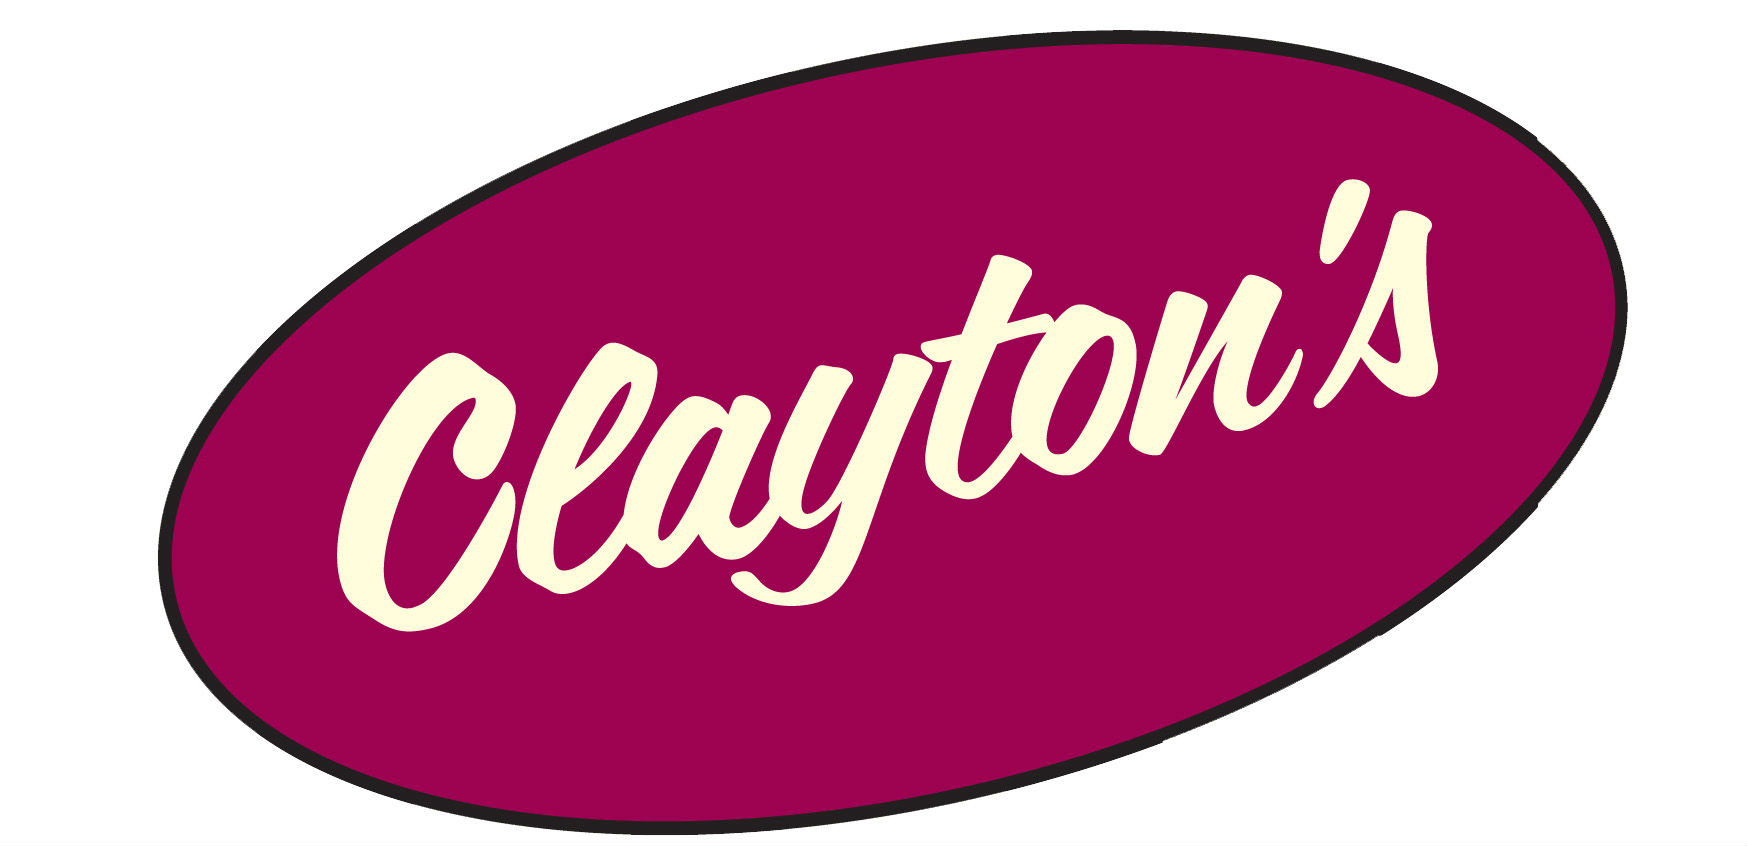 Claytons Coffee Shop